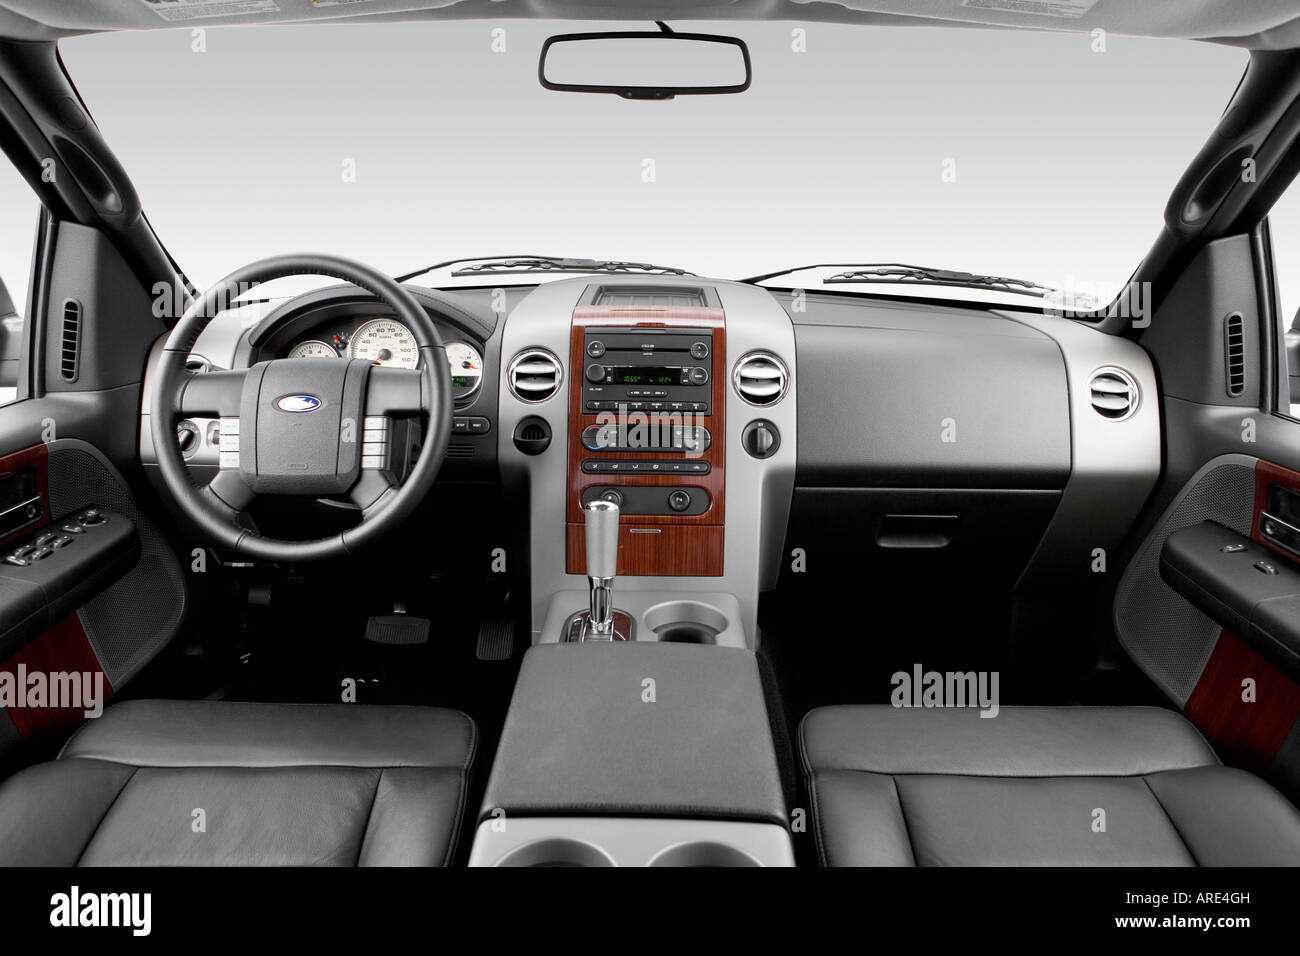 2006 Ford F-150 Lariat in Black - Dashboard, center console, gear Stock Photo: 16026496 - Alamy